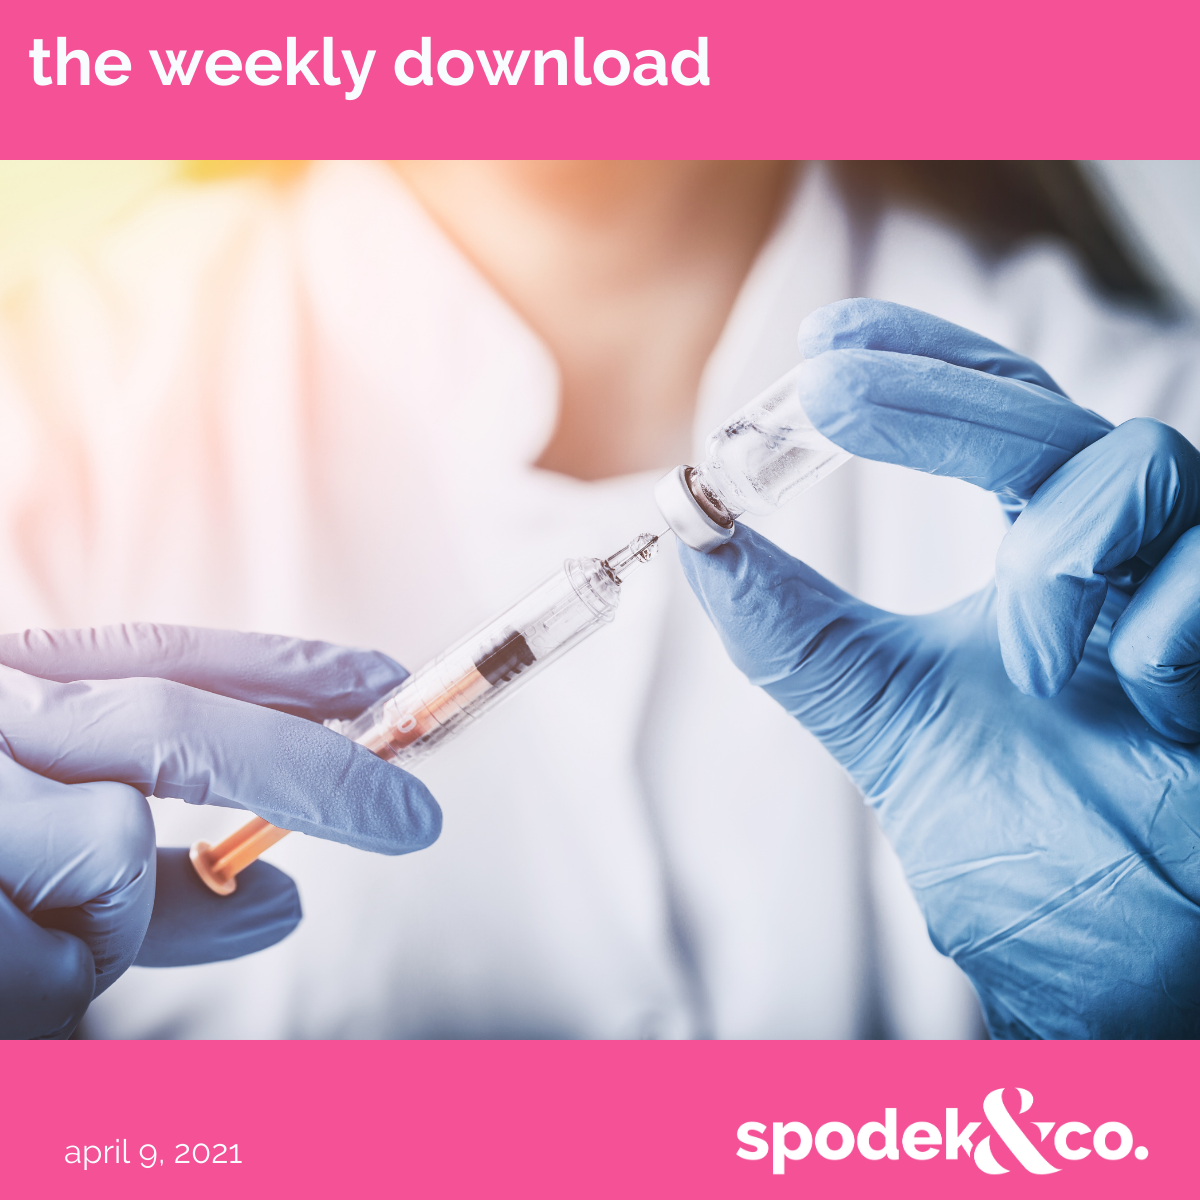 The Weekly Download – April 9, 2021